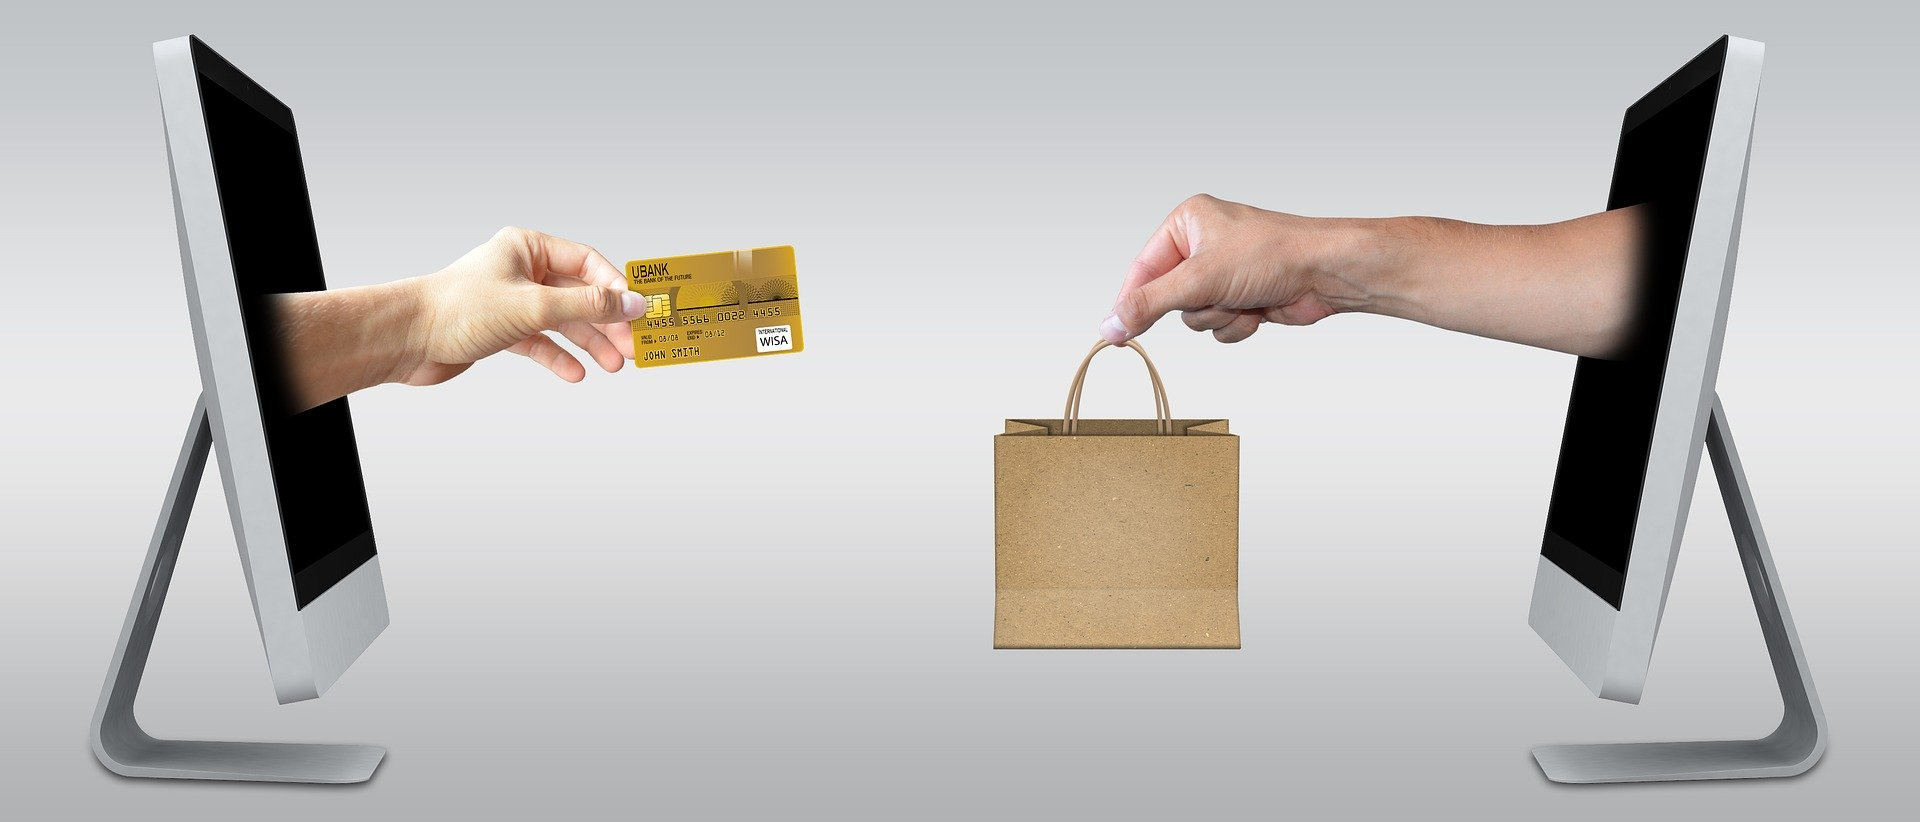 Shopping Online Computers Credit Card